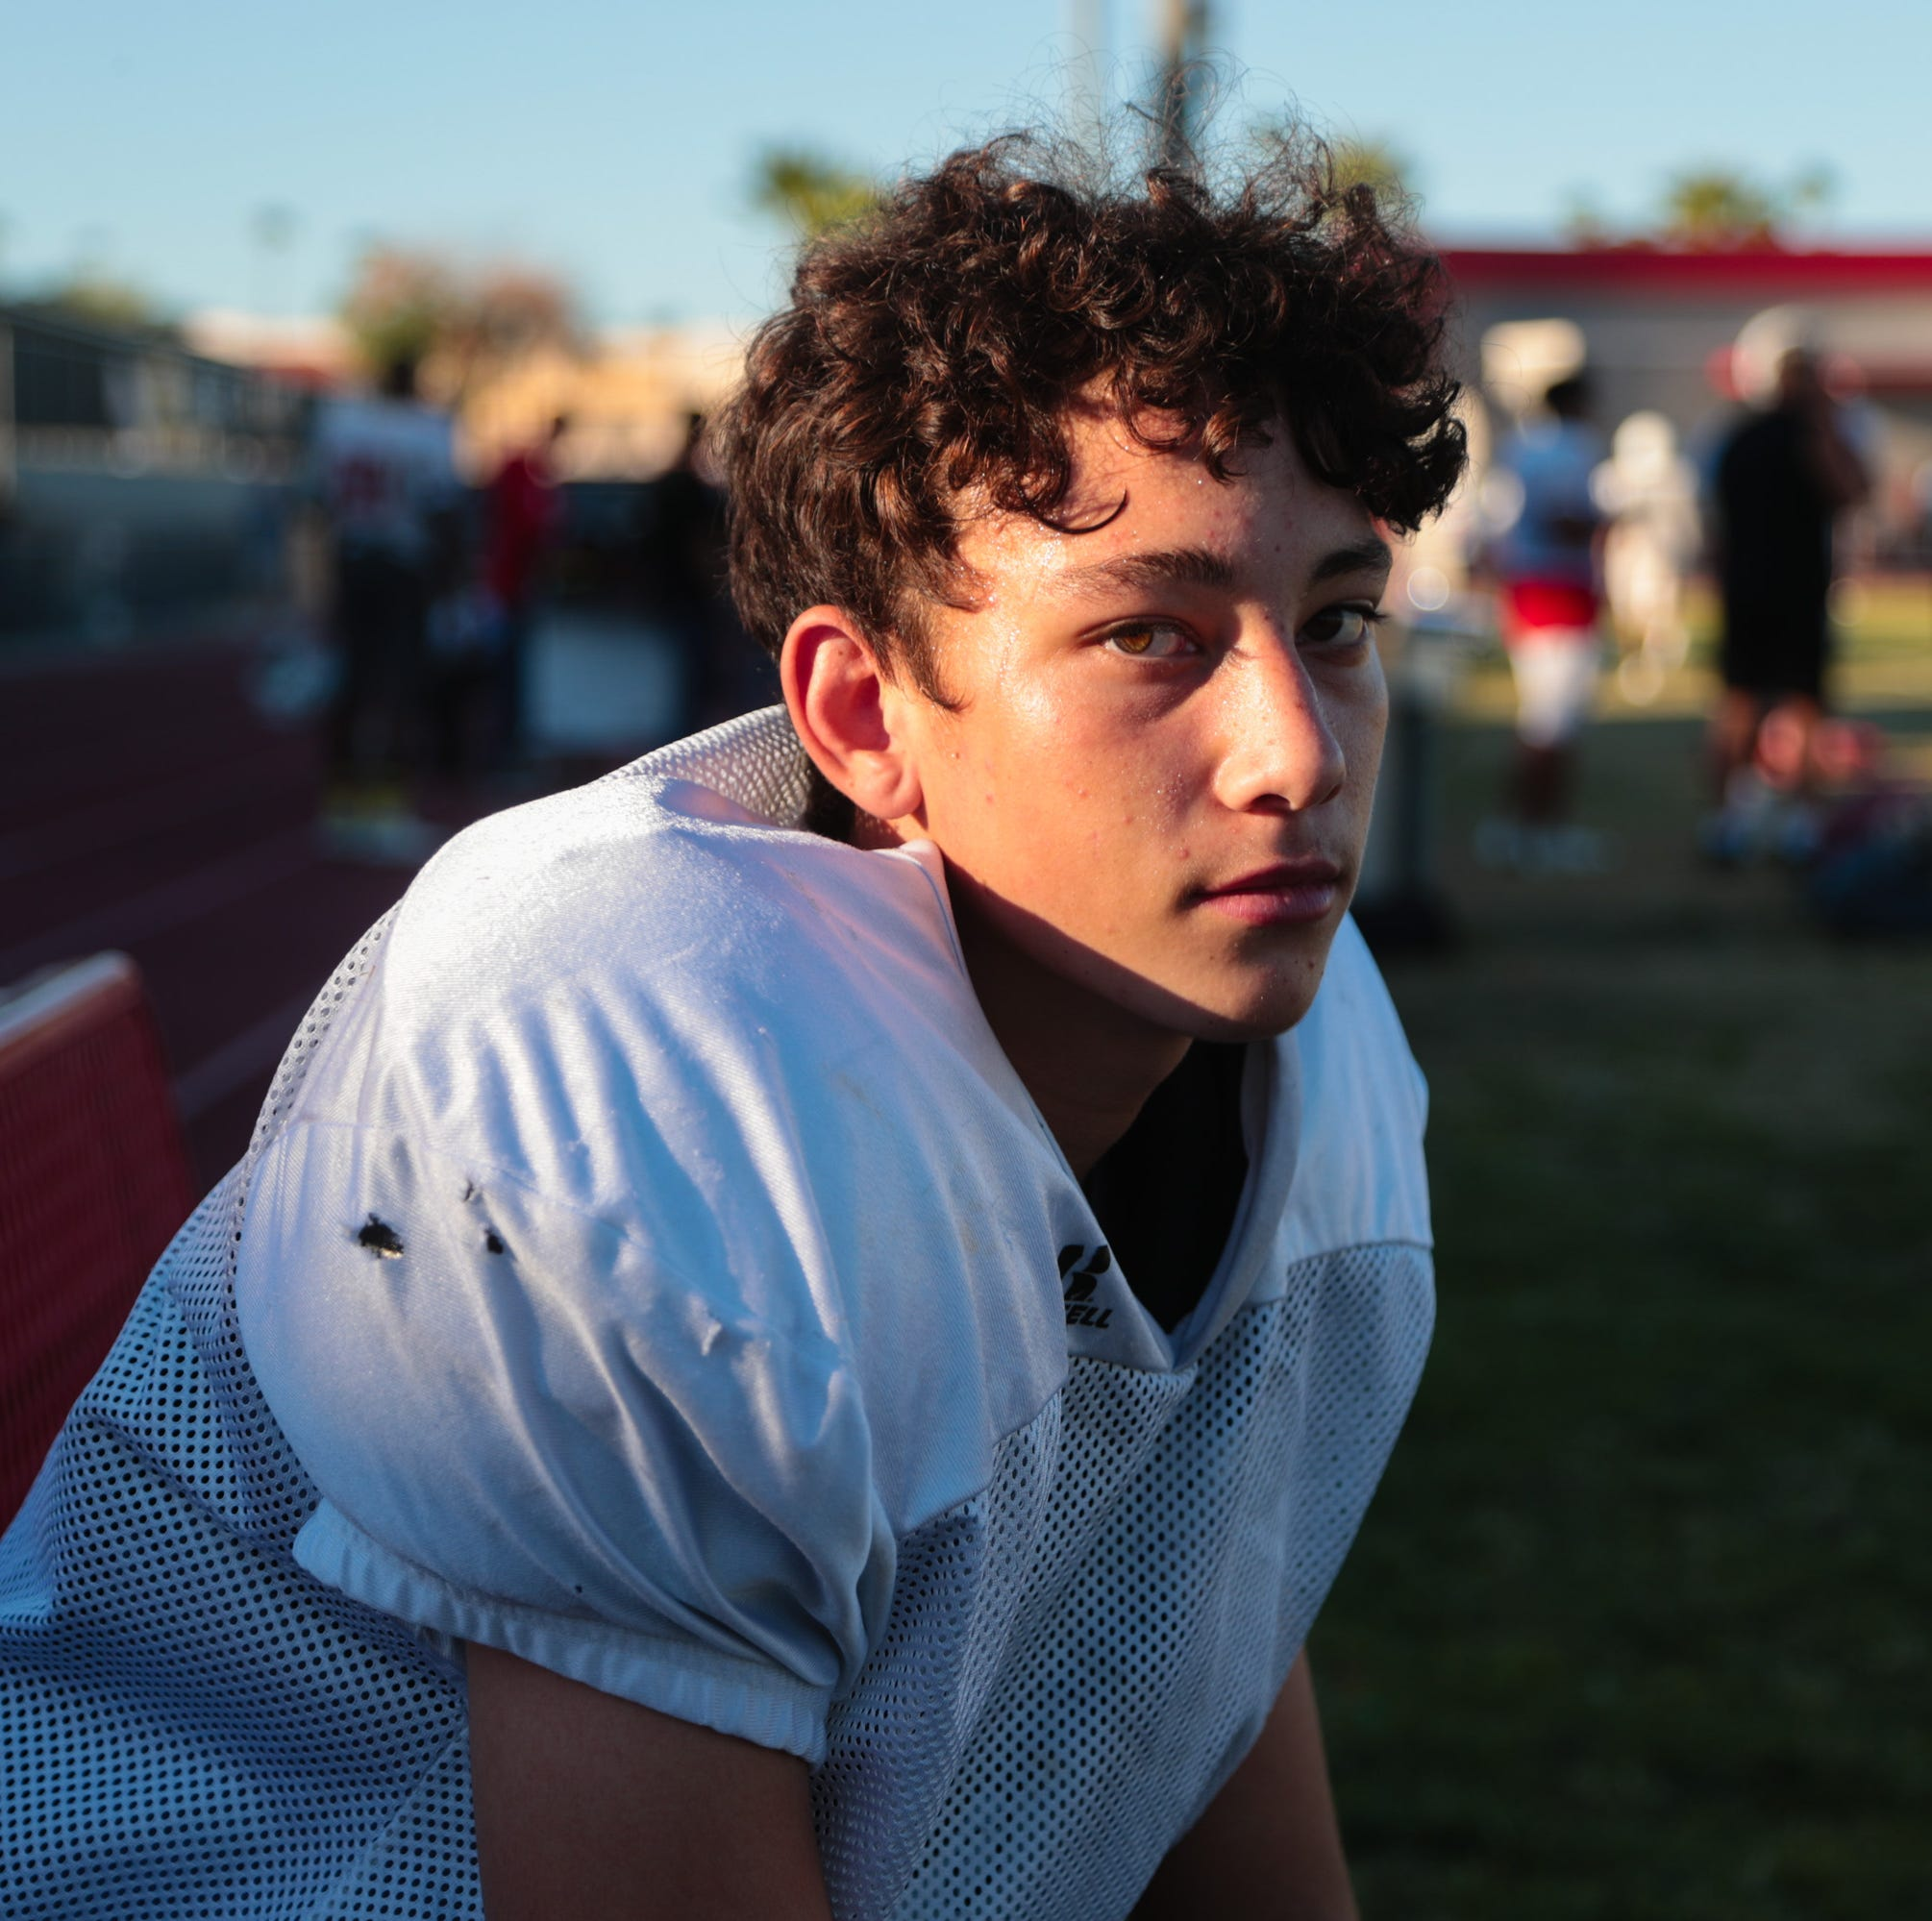 Freshman quarterback leads Palm Springs High School, just like his dad did 20 years ago